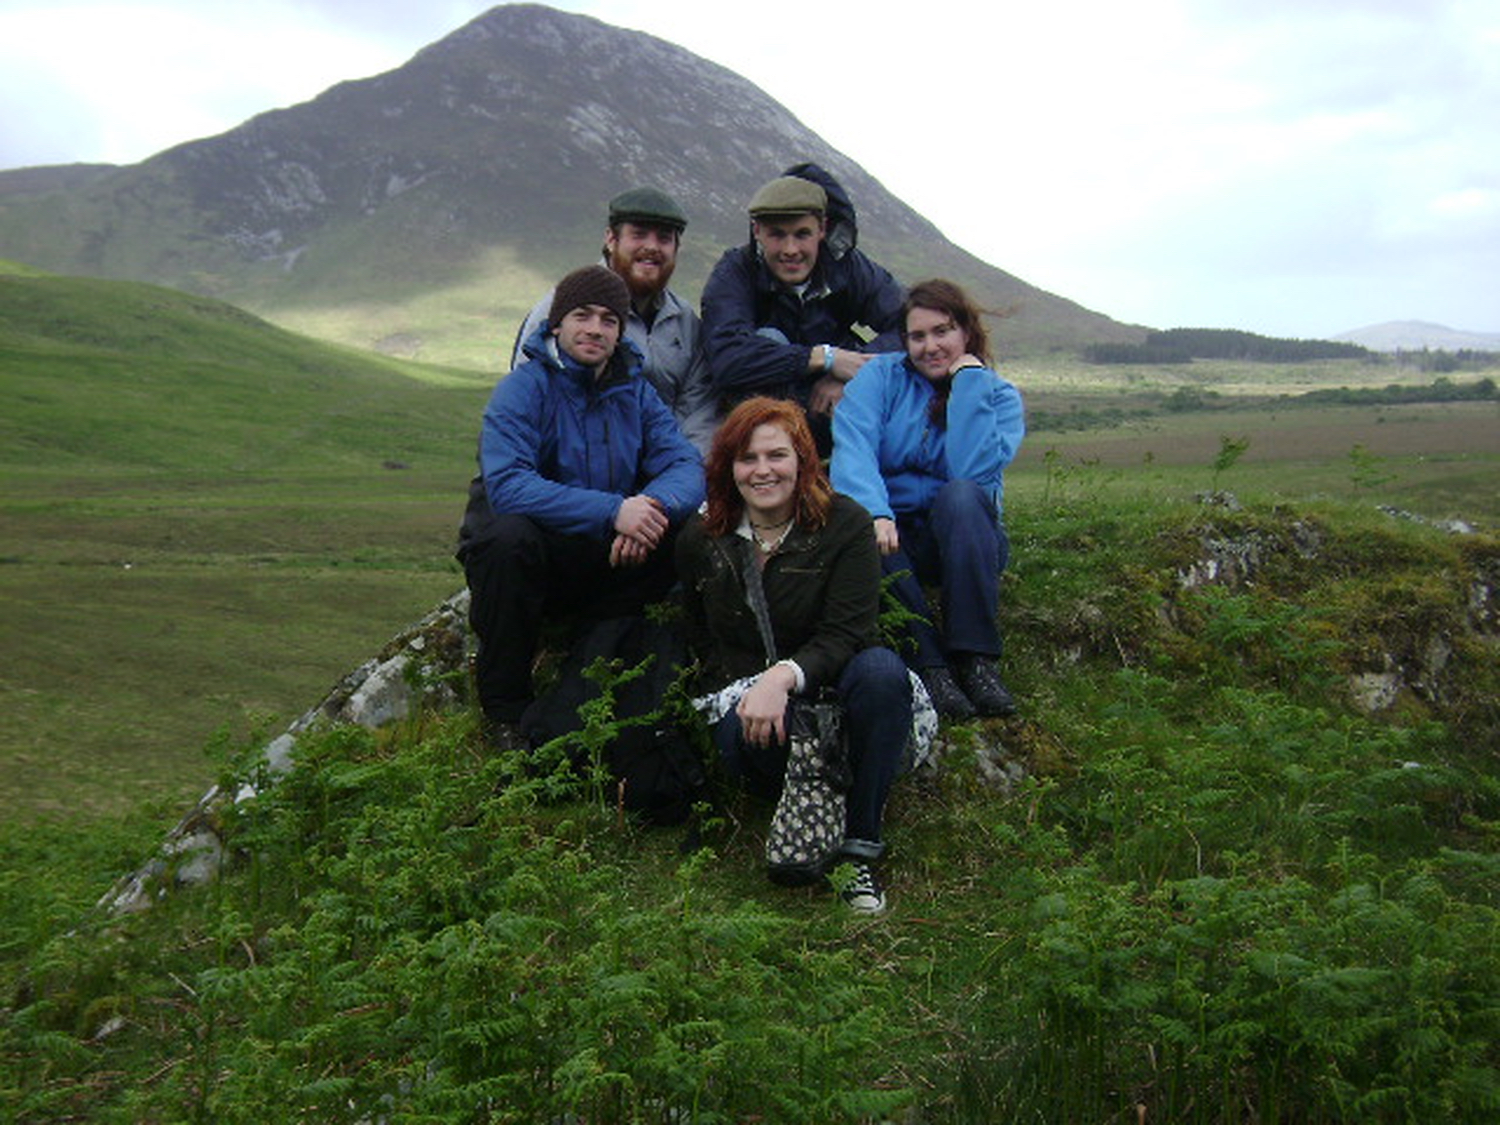 Maine Maritime Academy students on trip to Ireland